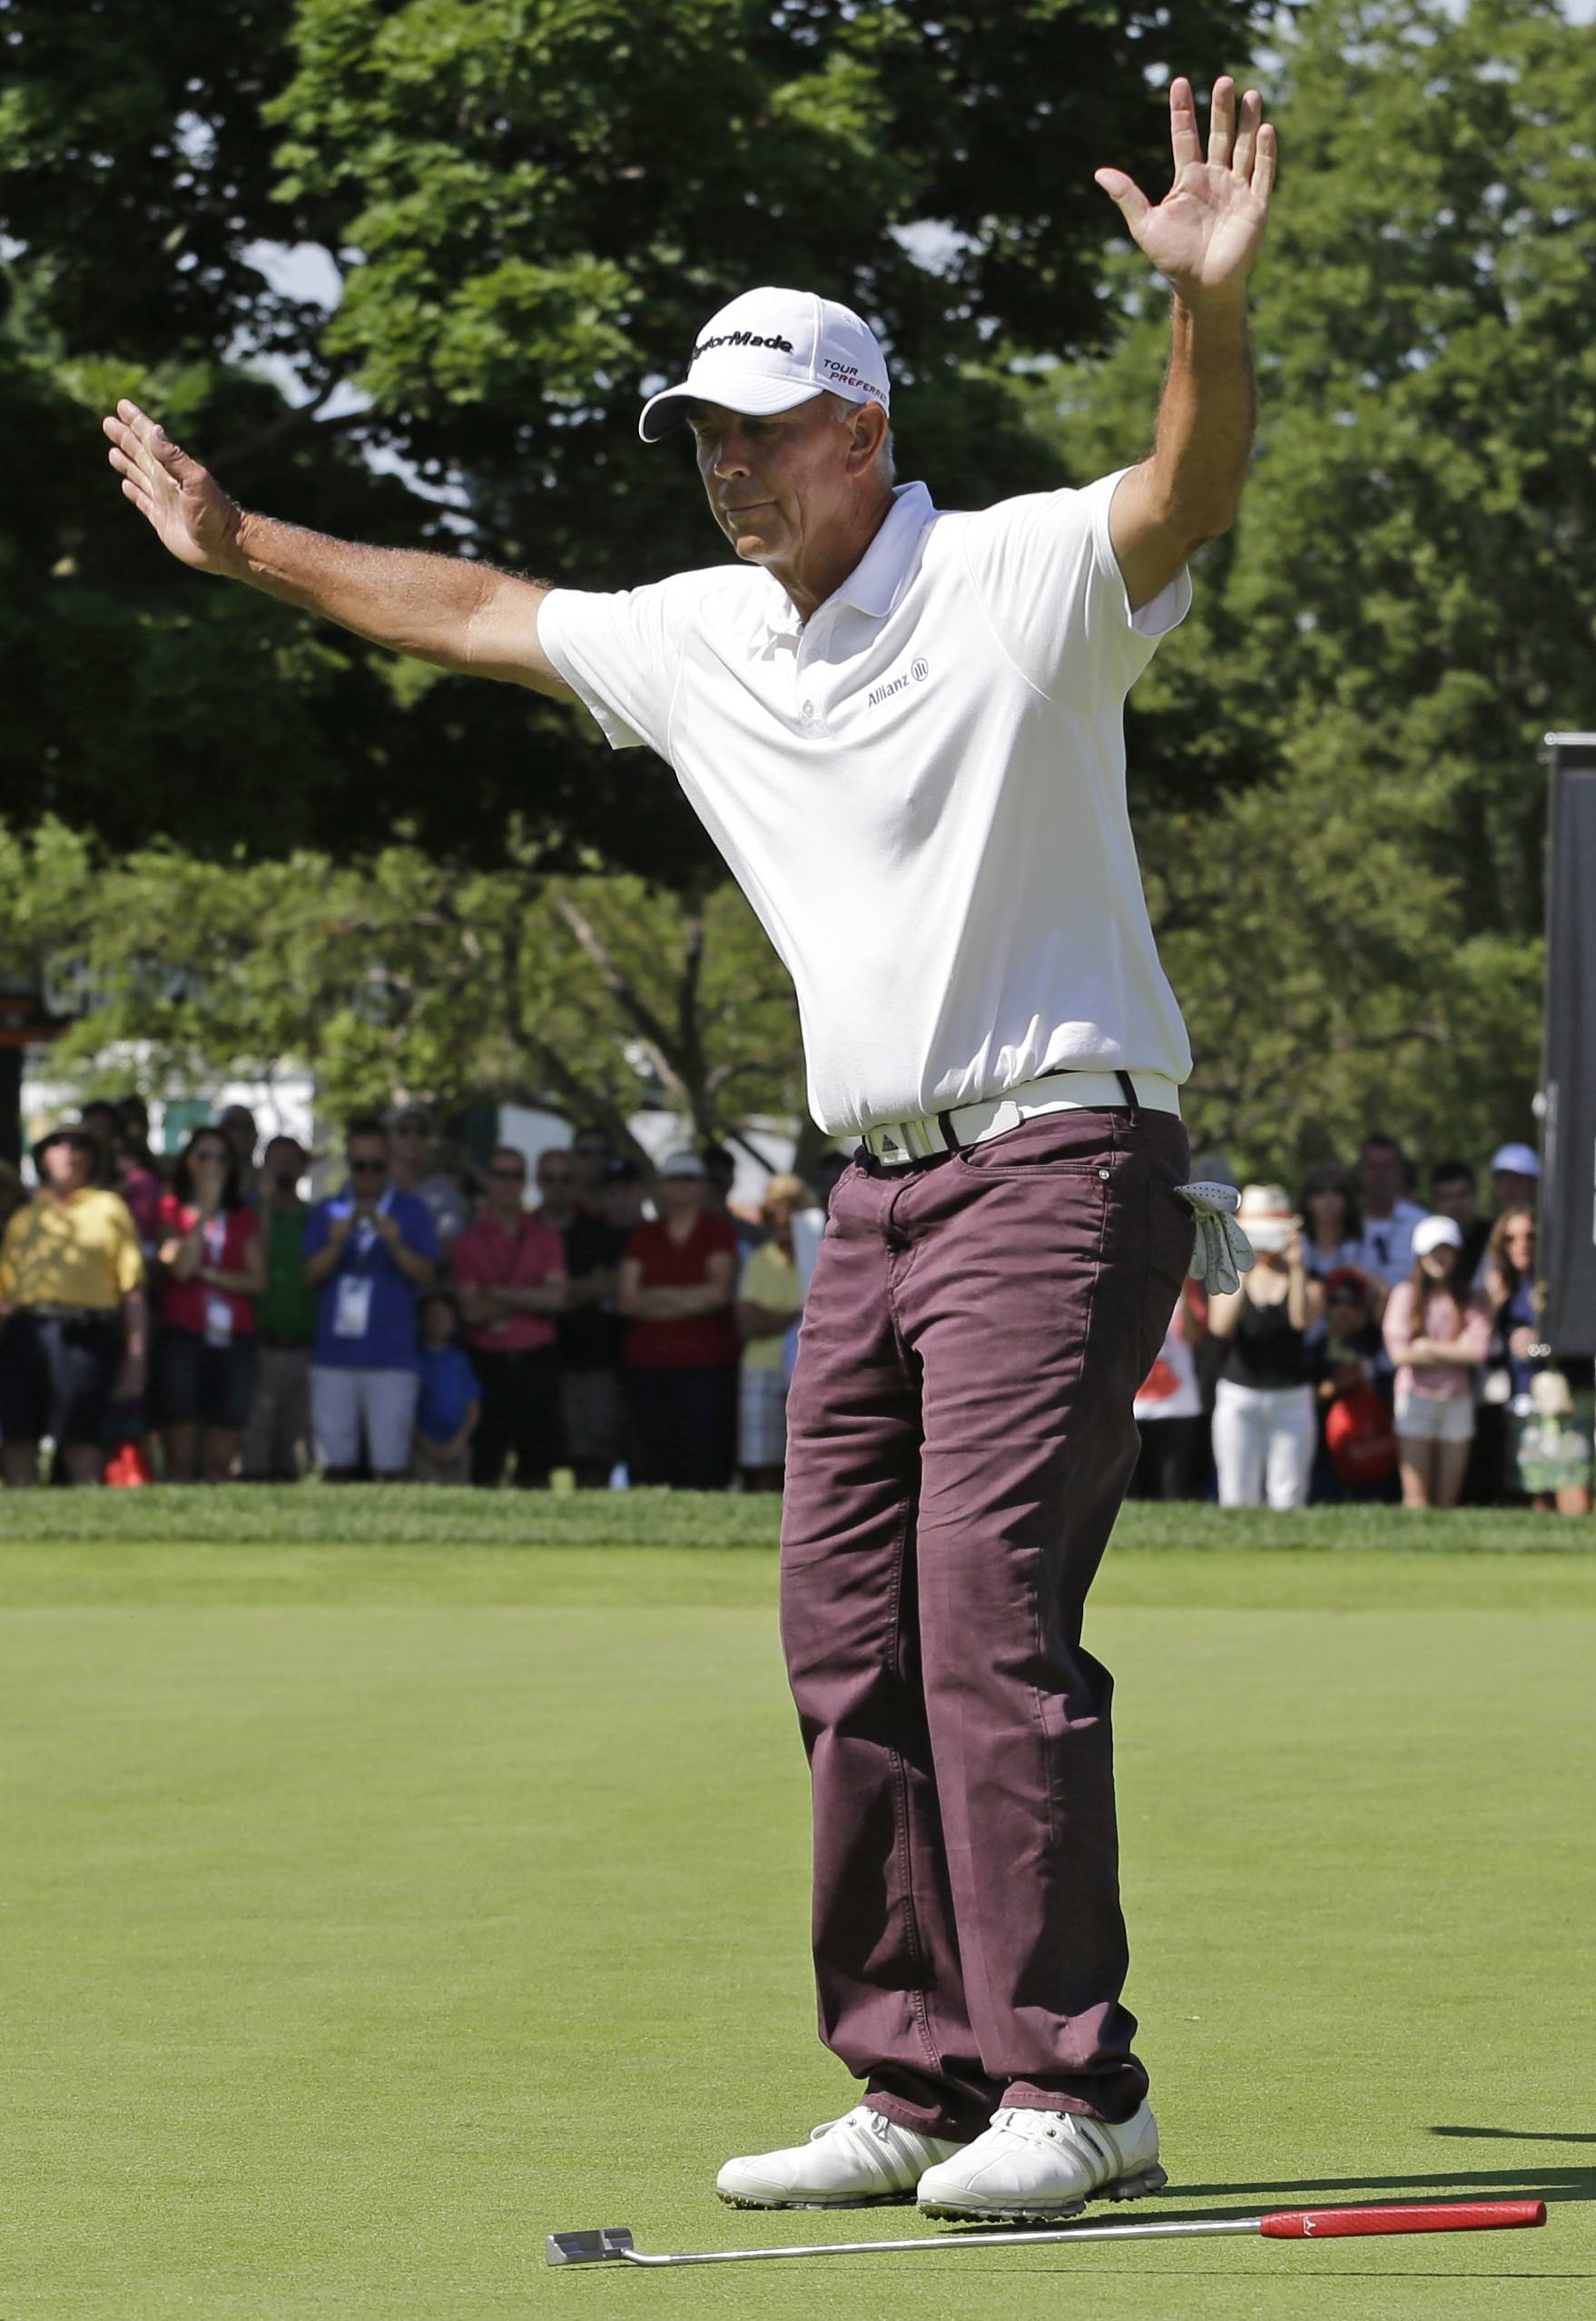 Tom Lehman celebrates after winning the Encompass Championship on Sunday at North Shore Club in Glenview.